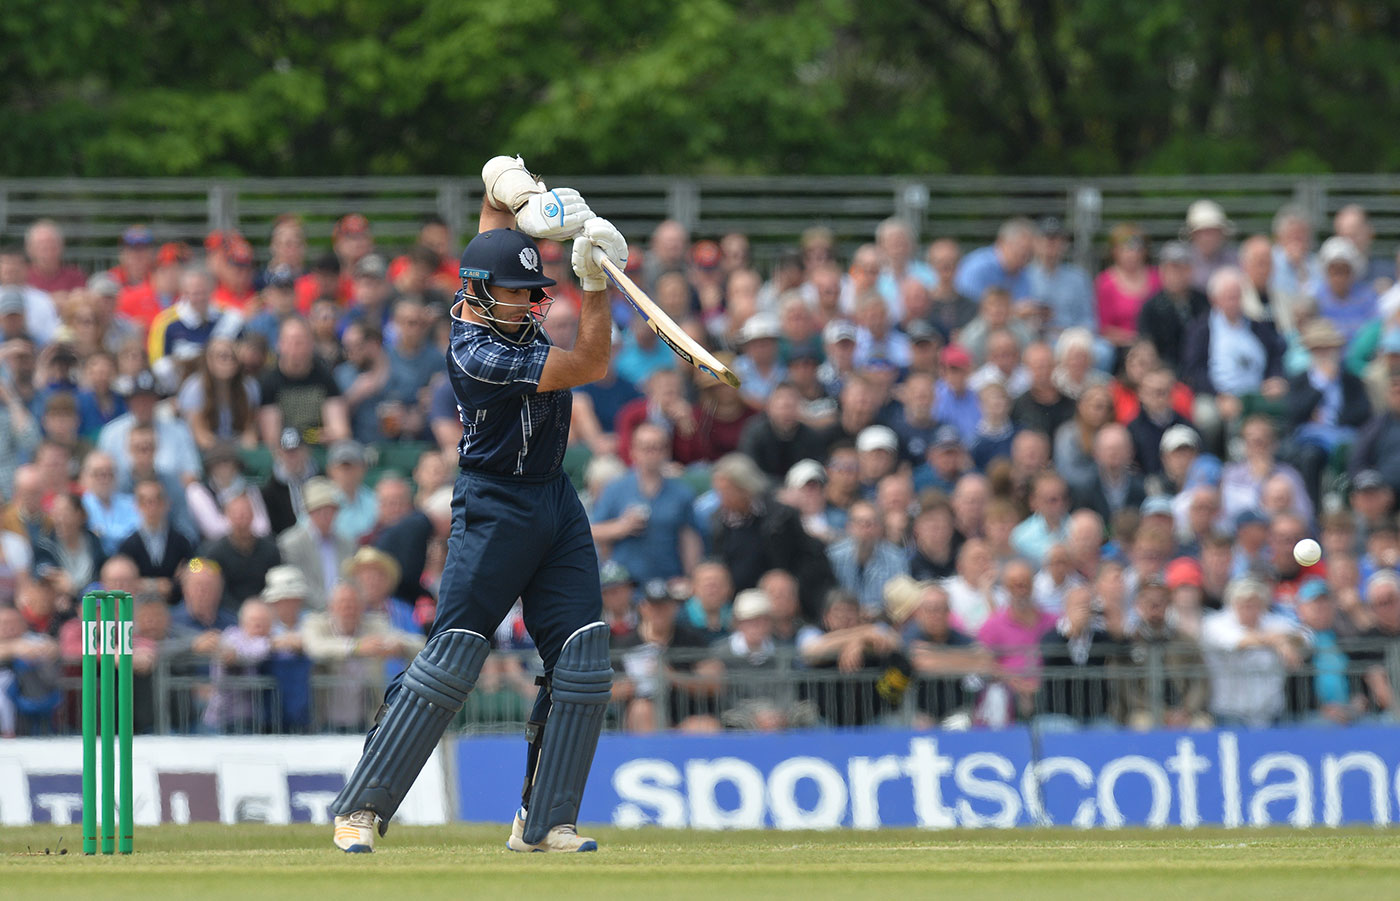 Northamptonshire Re-Signs Kyle Coetzer for T20 Blast